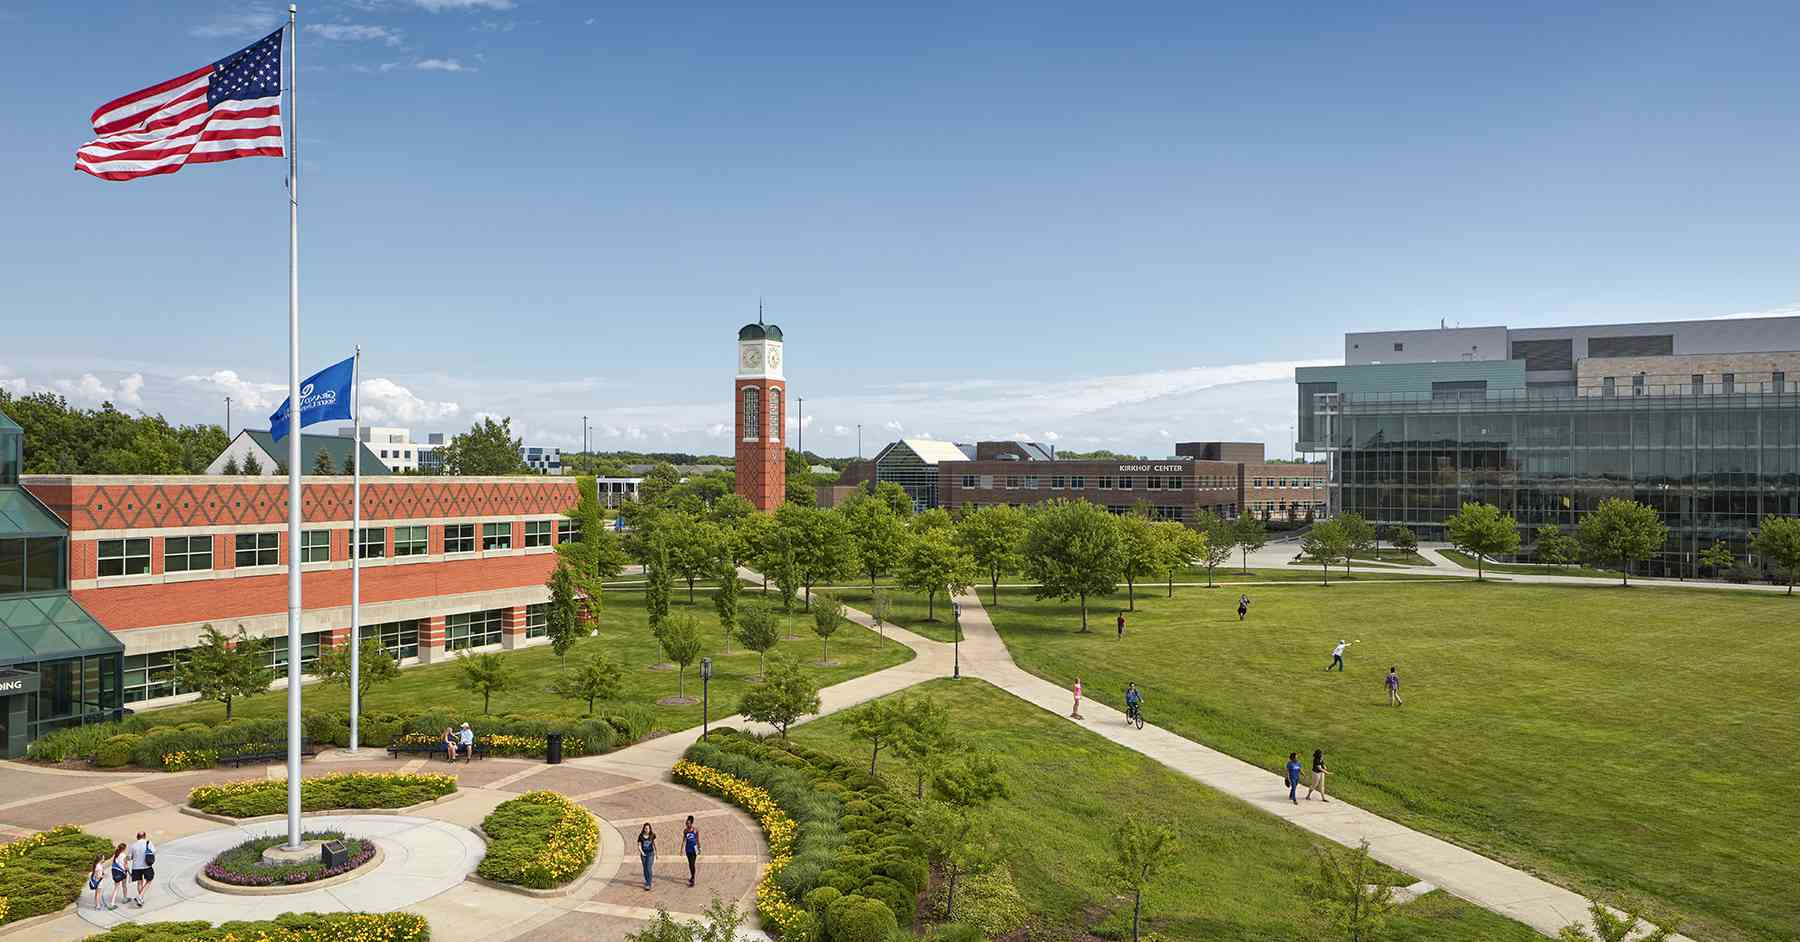 5 Fun Things About The Library at GVSU